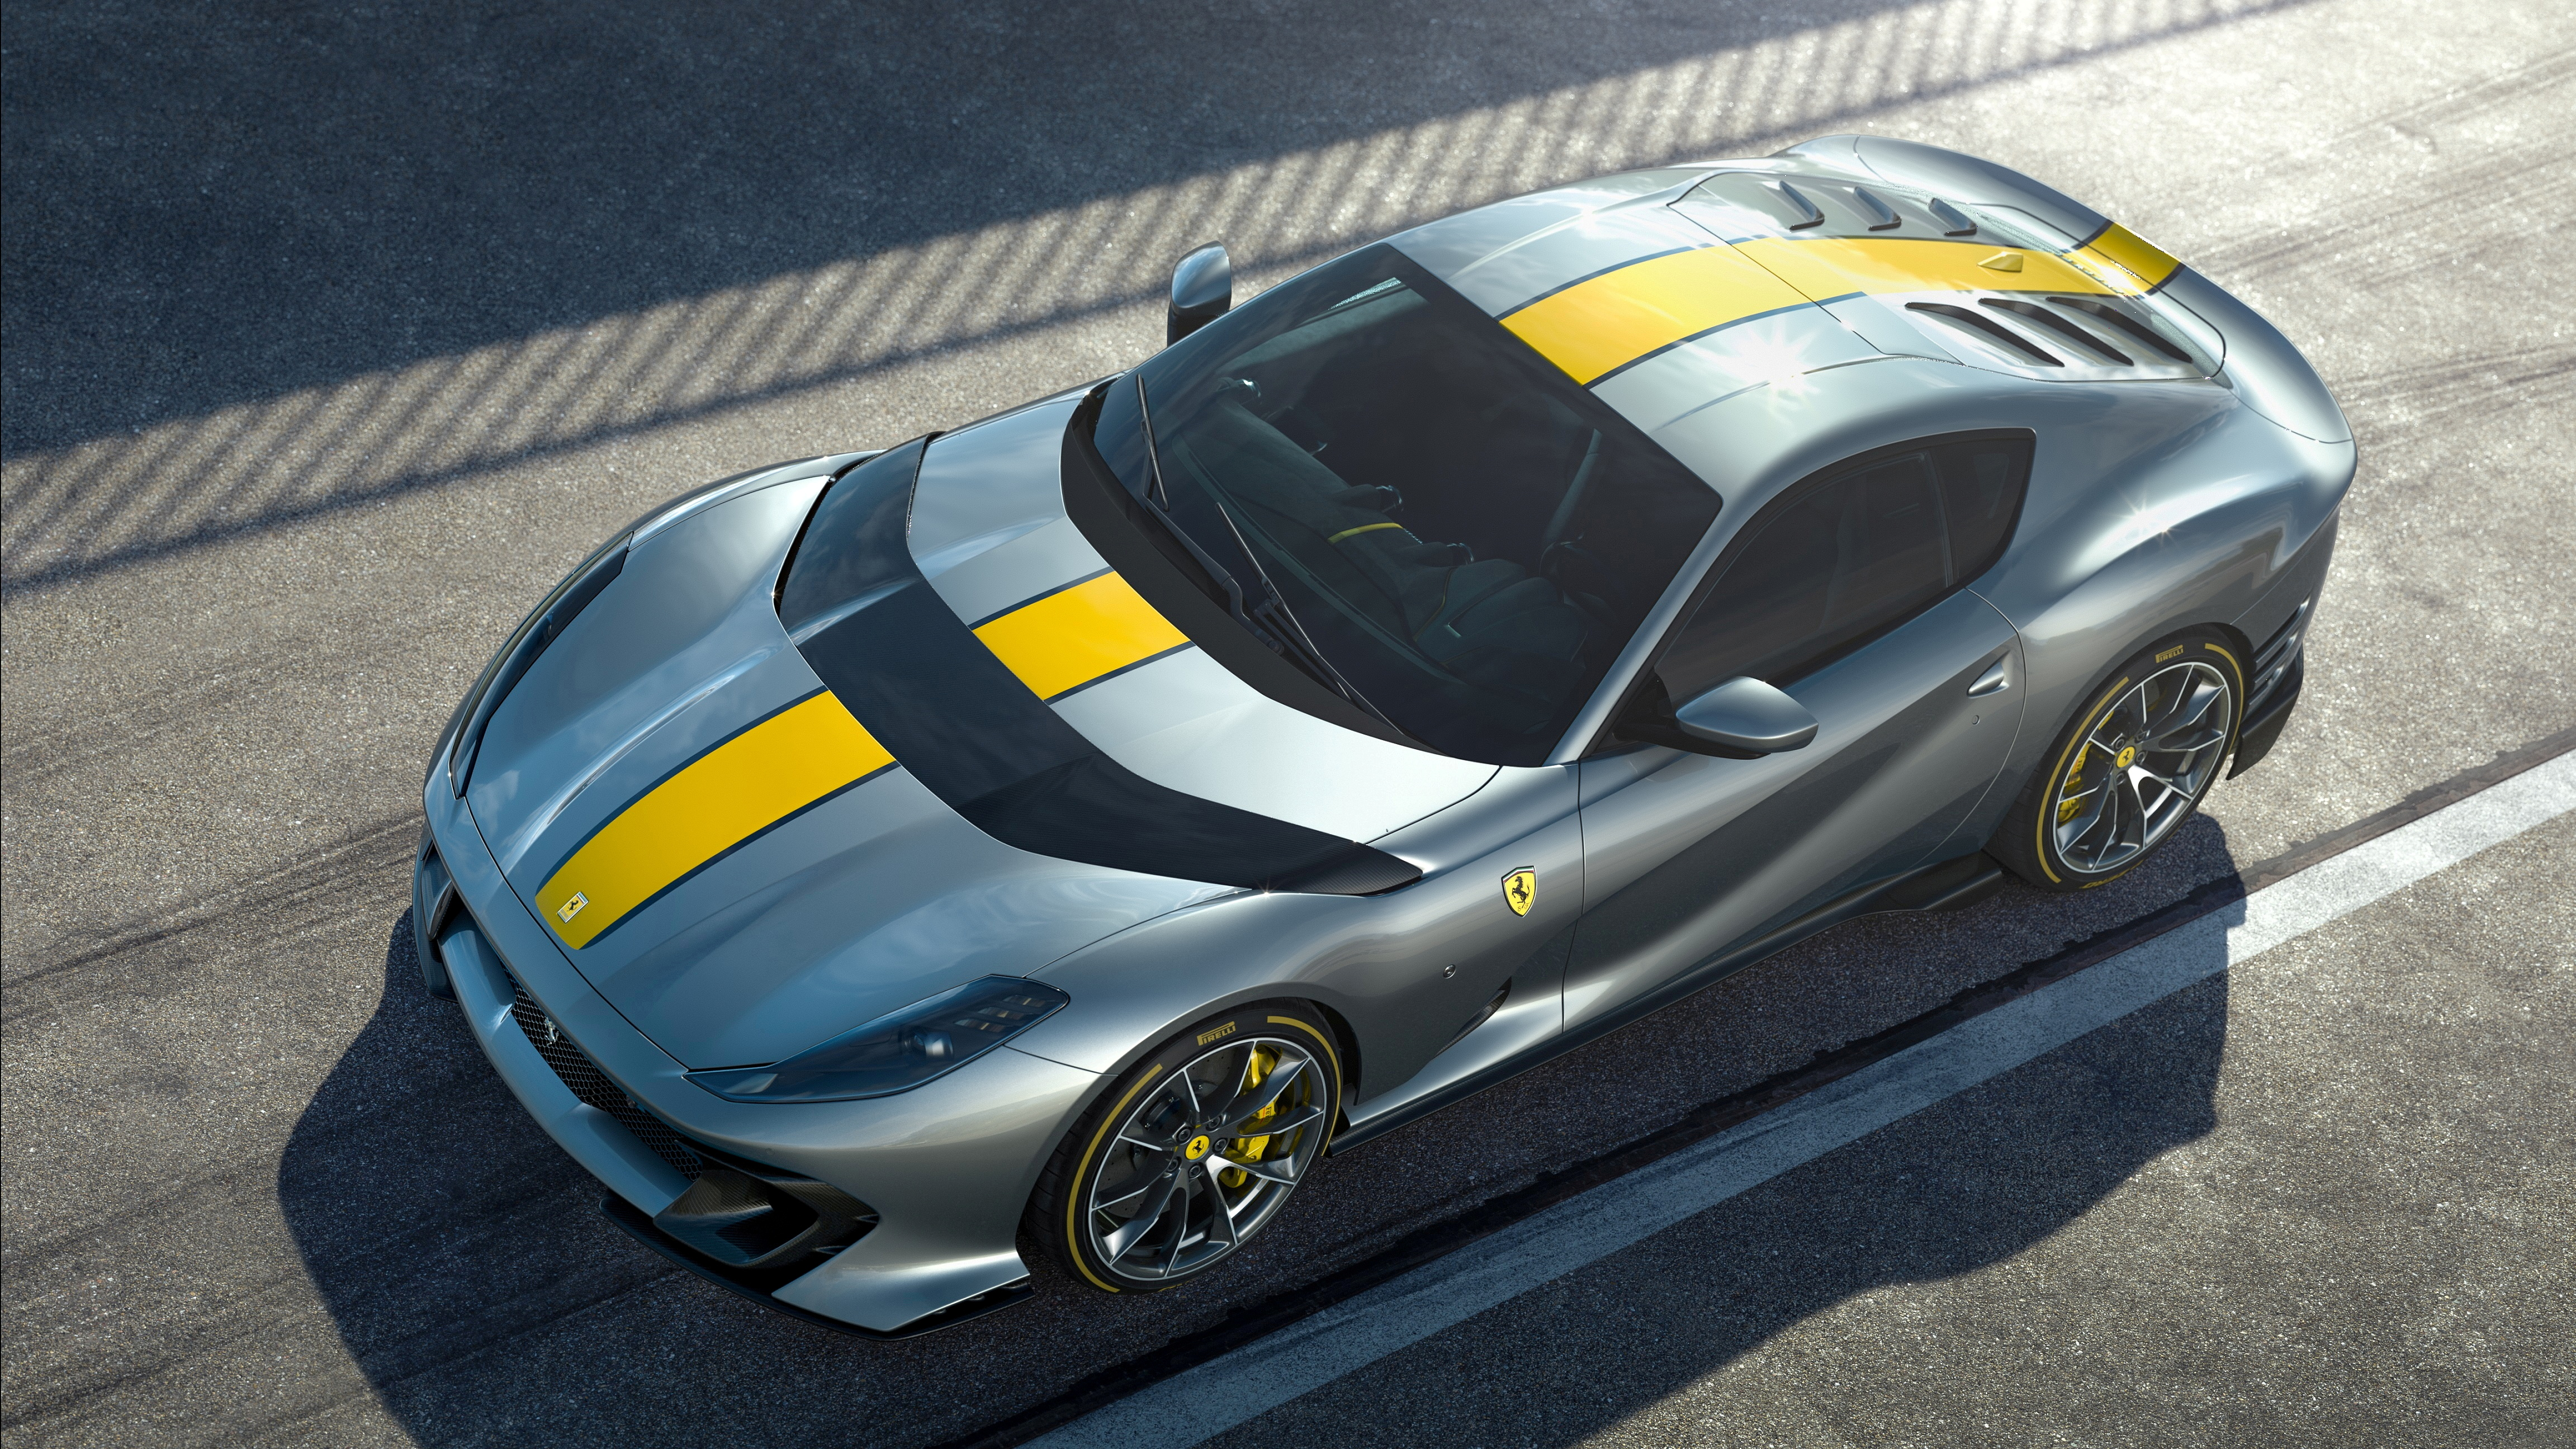 Ferrari's latest limited-edition special series is seen in this handout photo obtained by Reuters on April, 21, 2021. Ferrari/Handout via REUTERS